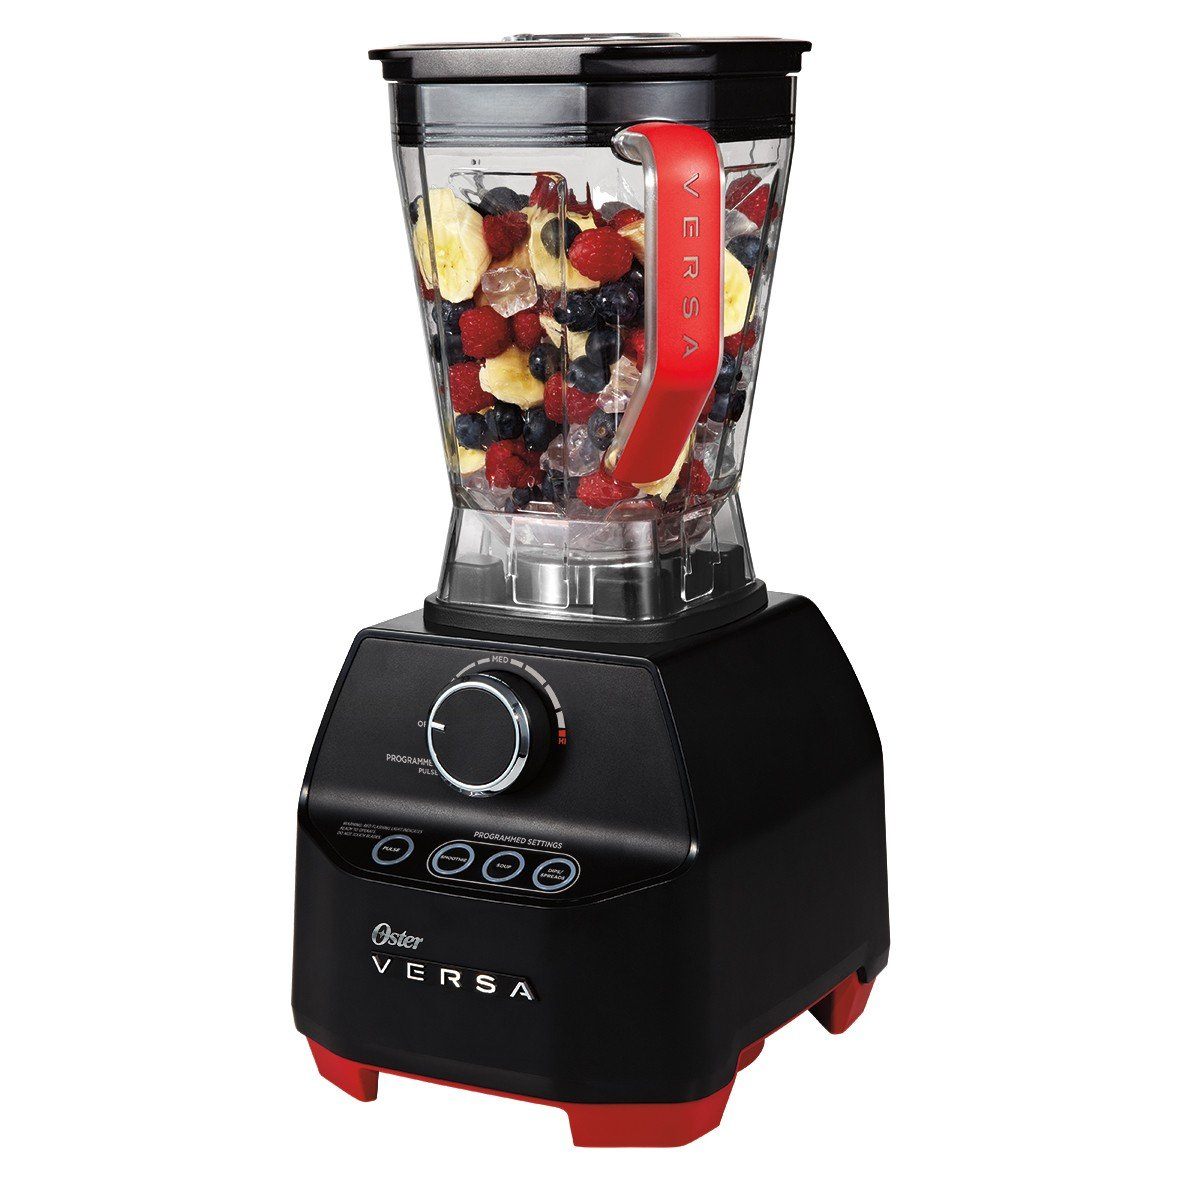 Oster VErsa 1400 Blender Review